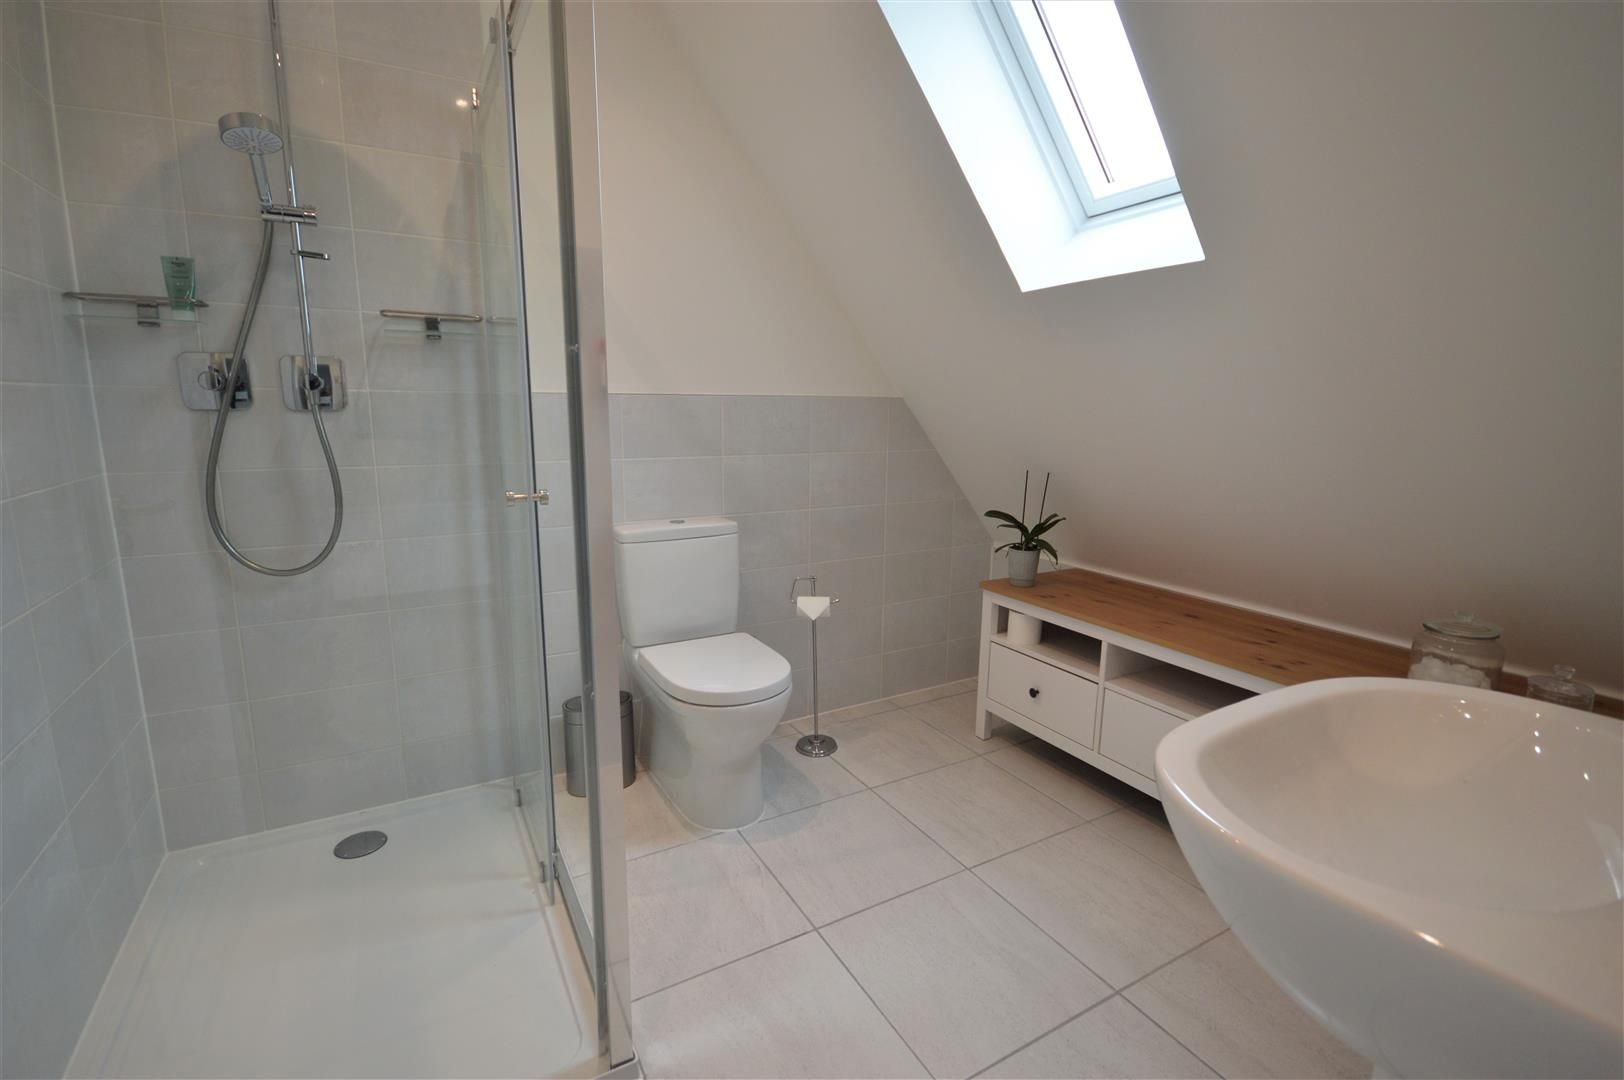 5 bed detached for sale in Weobley  - Property Image 14